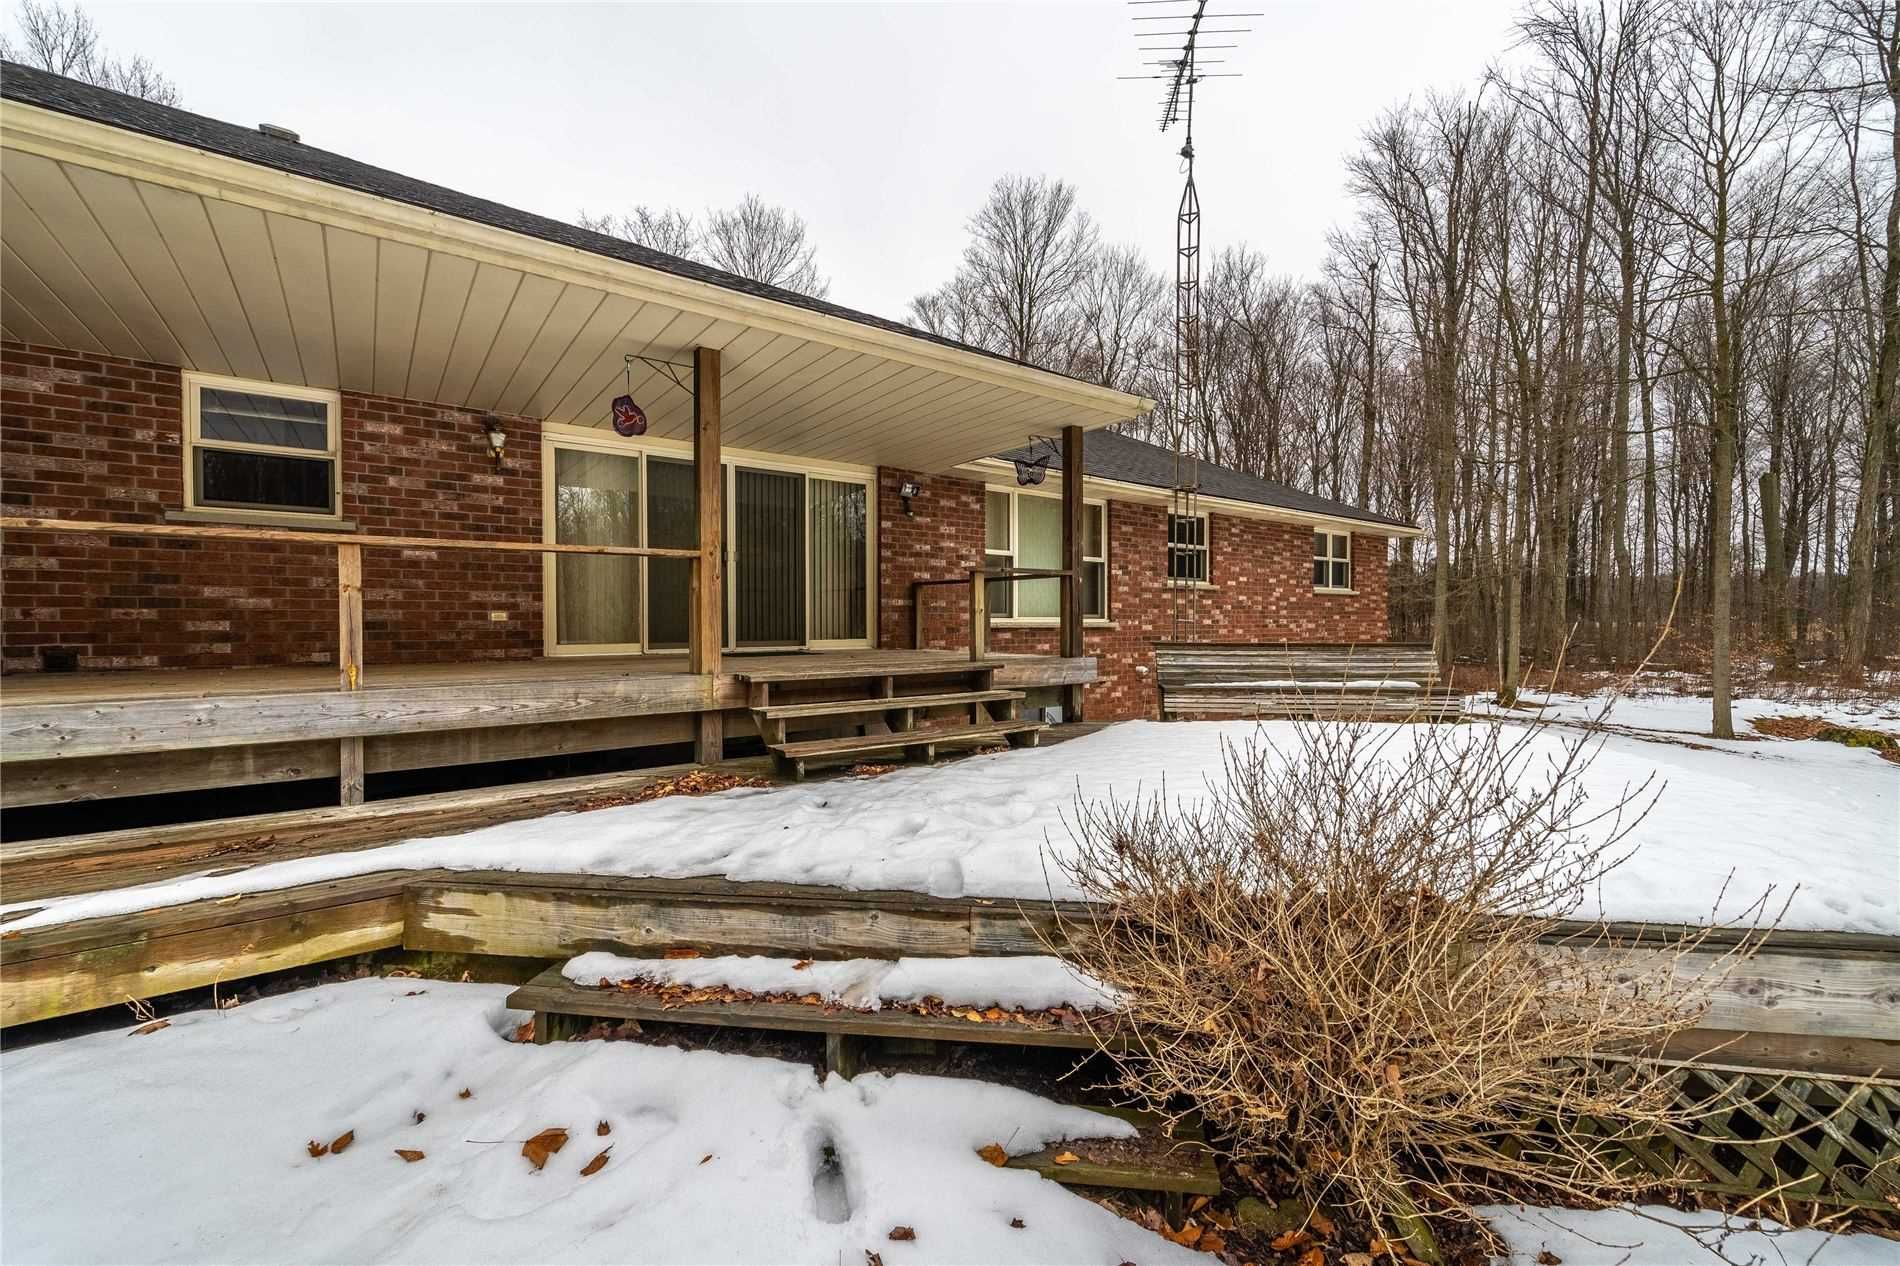 Photo 16: Photos: 918 Windham12 Road in Norfolk: Simcoe House (Bungalow) for sale : MLS®# X4707719